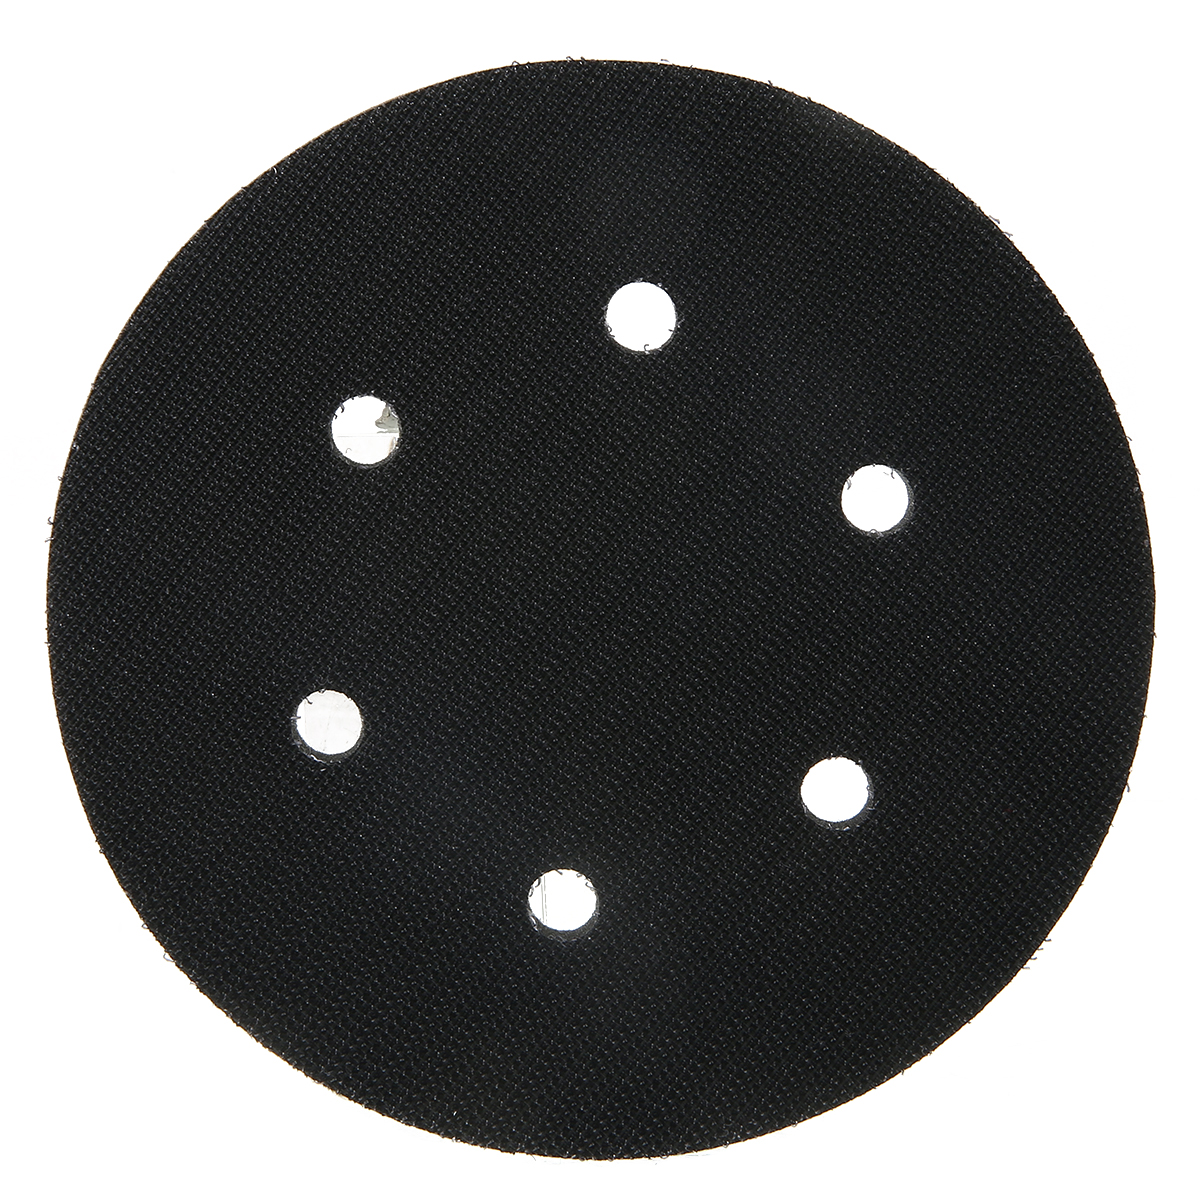 150mm Backing Pad 6'' 6 Hole Soft Foam Interface Cushion Pad Hook And Loop Protecting Sanding Disc Power Sander Protection Tools